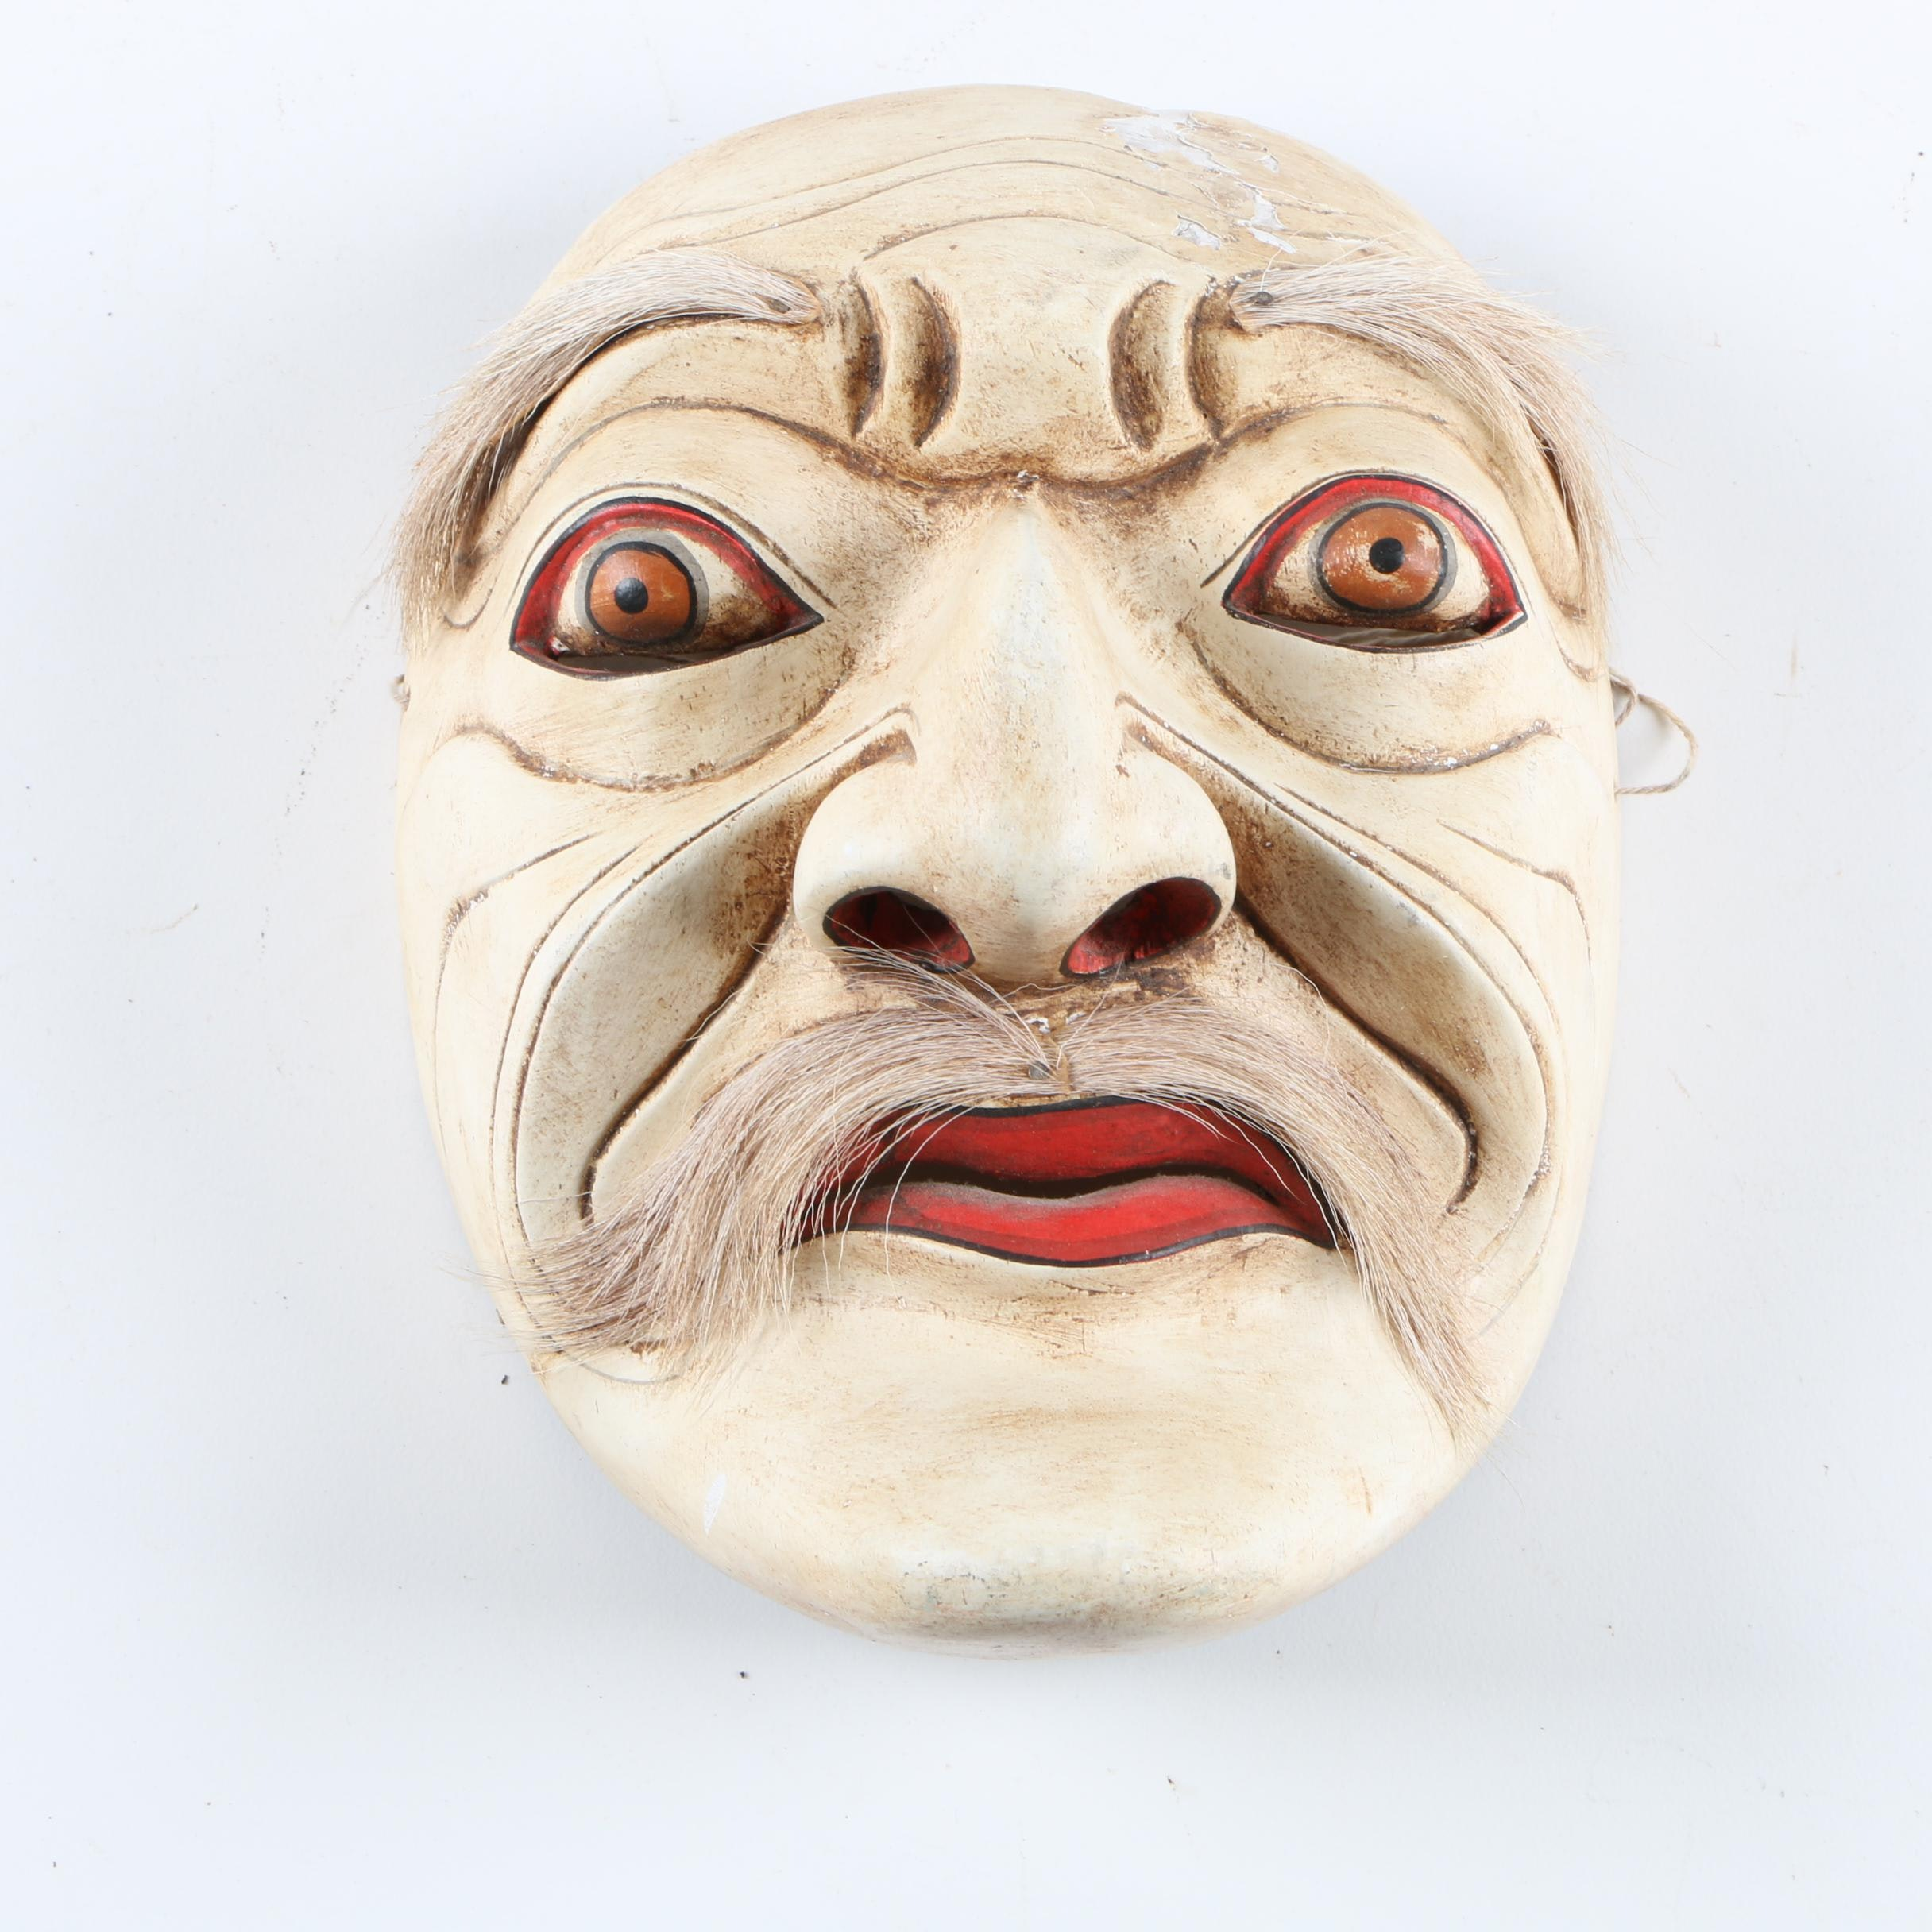 Indonesian Mask of an Old Man